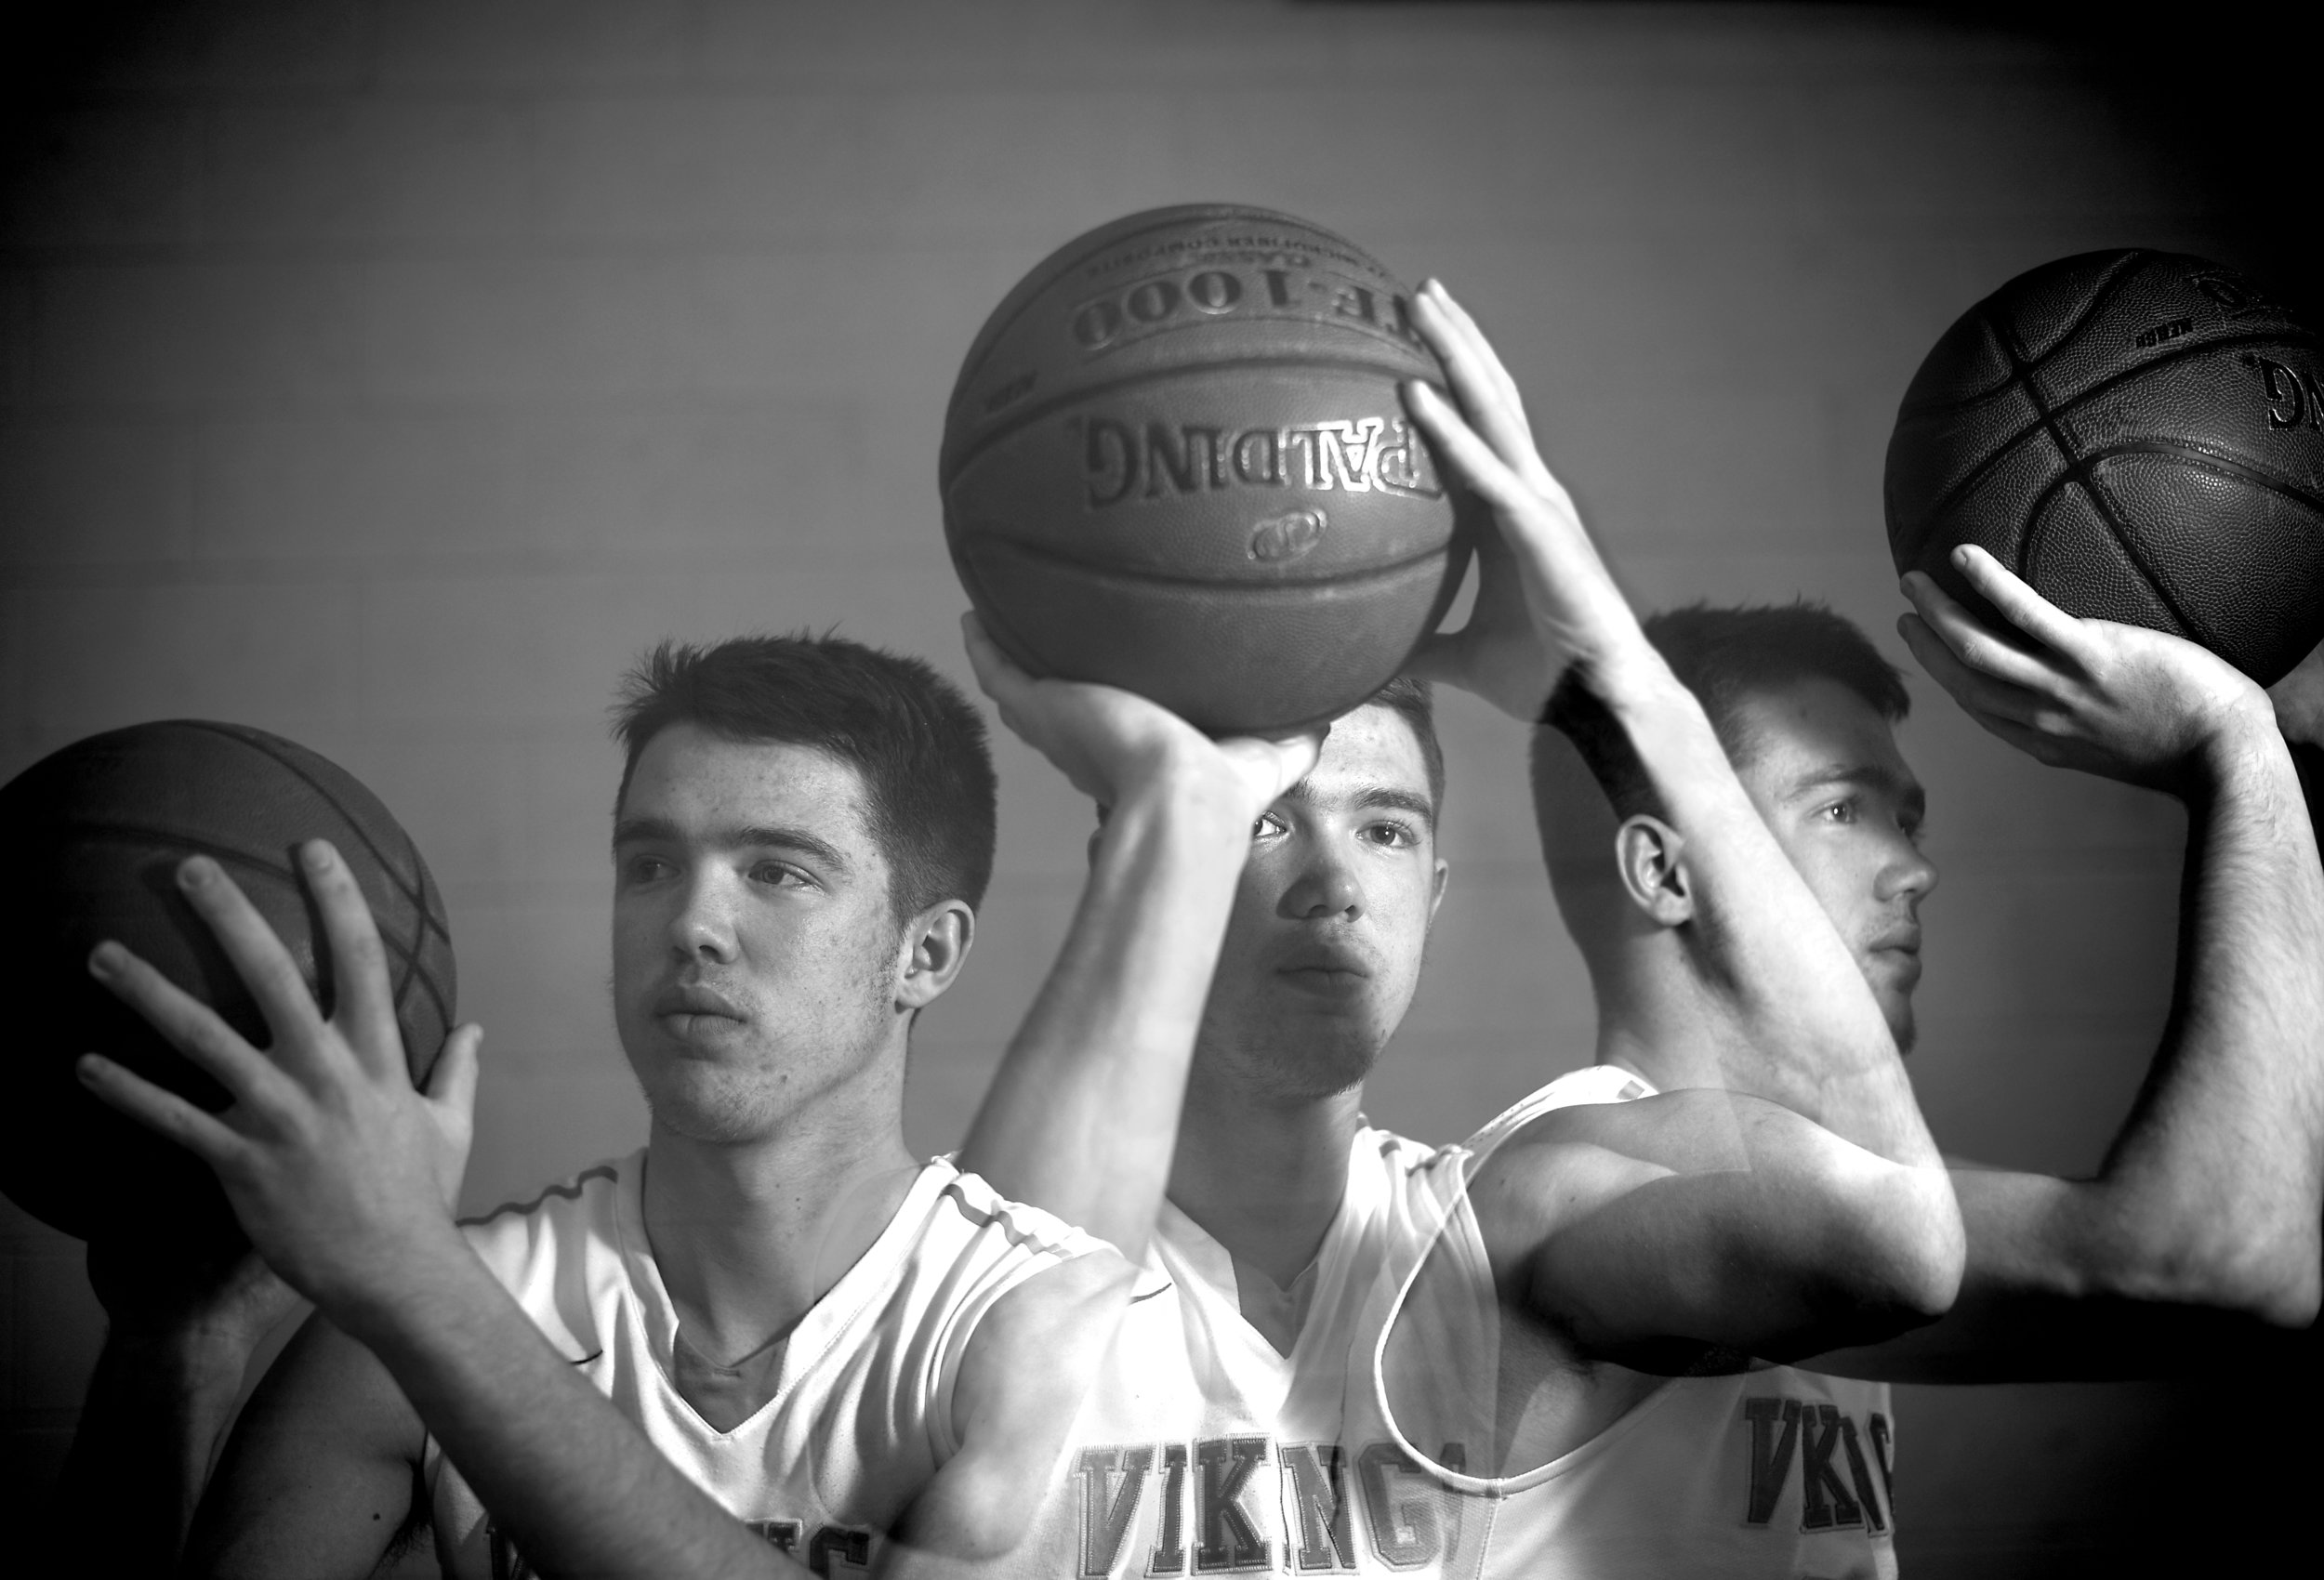 A triple exposure shows Pecatonica senior AJ Hendrickson who has scored more than 2,000 points in his high school career.